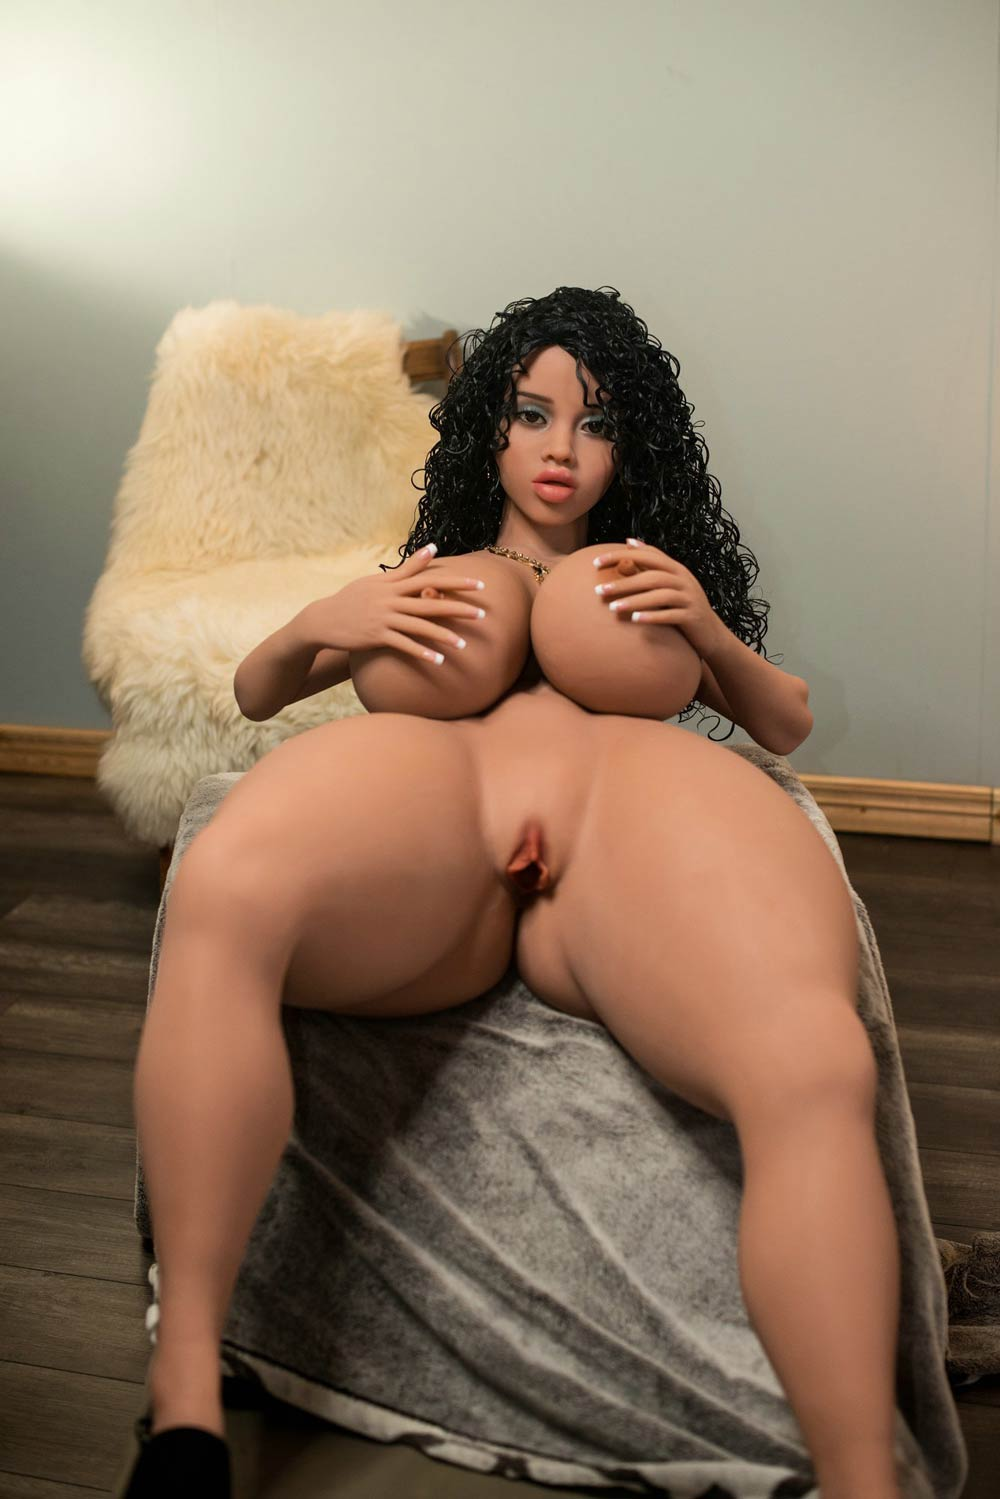 Big breasted sex doll with naked body